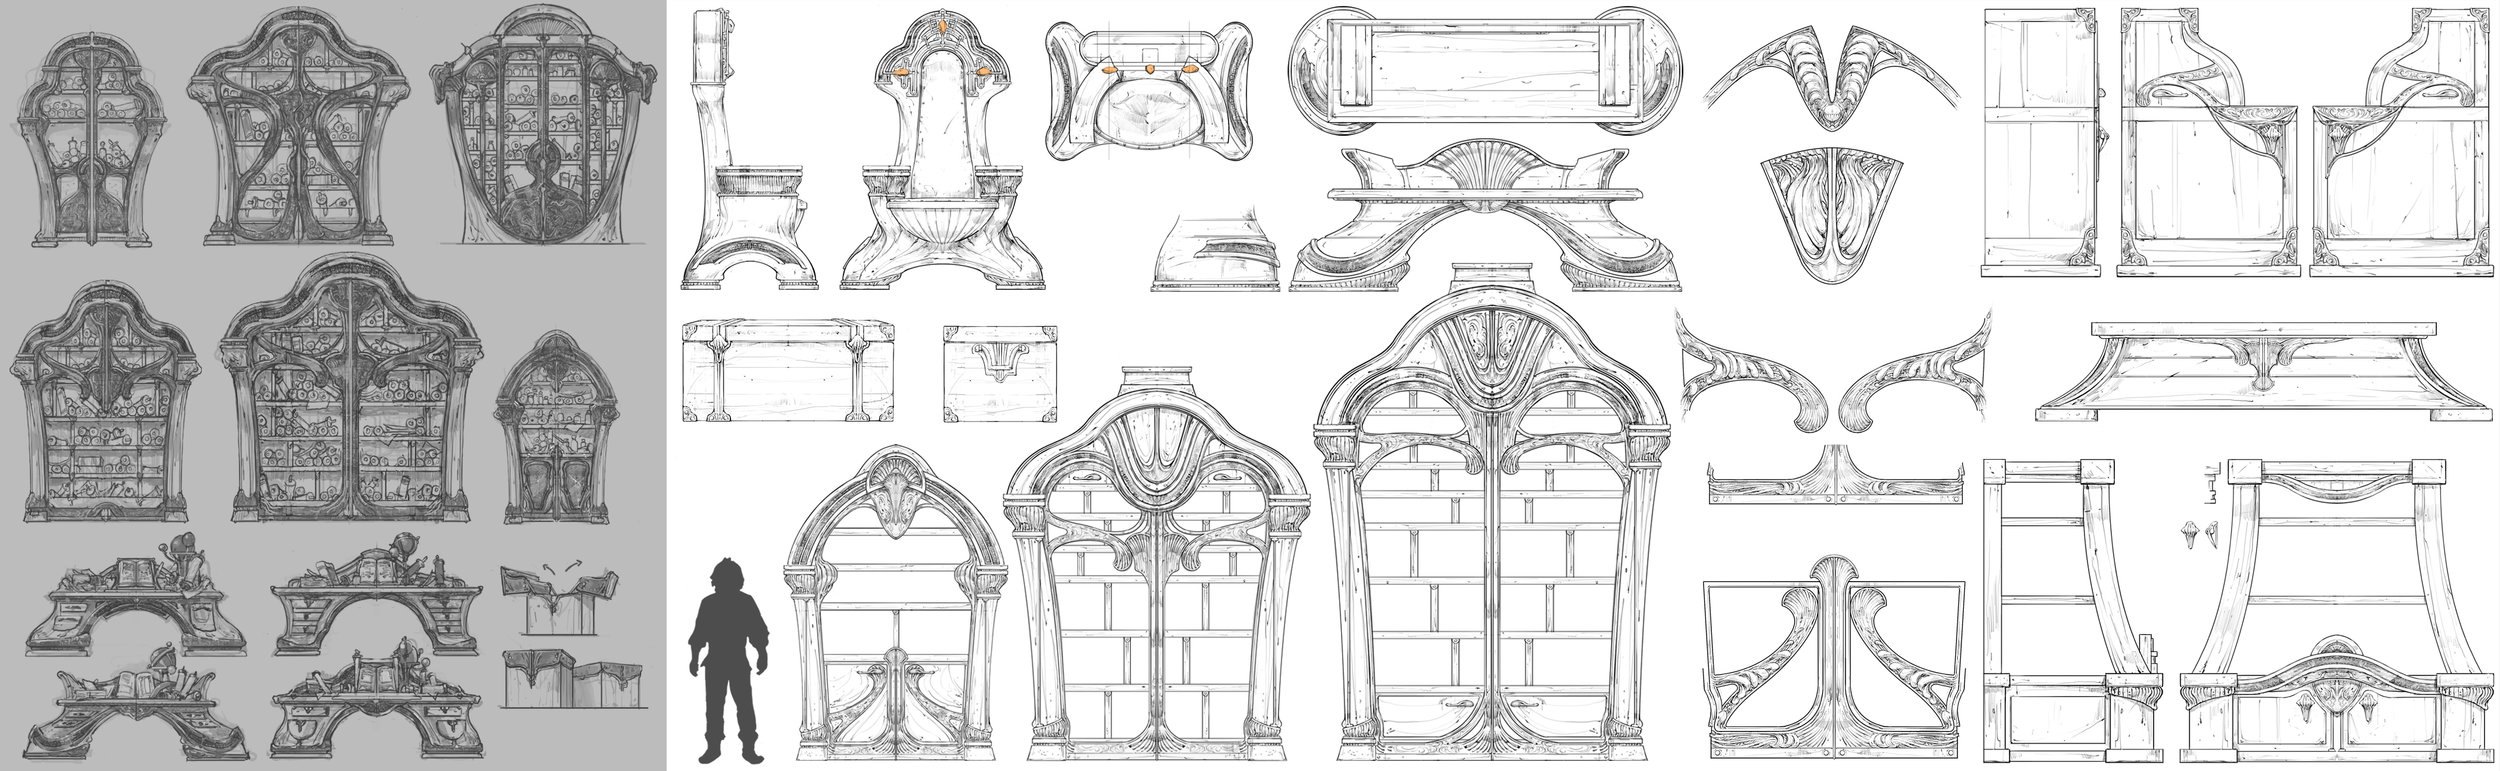 11 - Environment Asura Props Fourniture.jpg